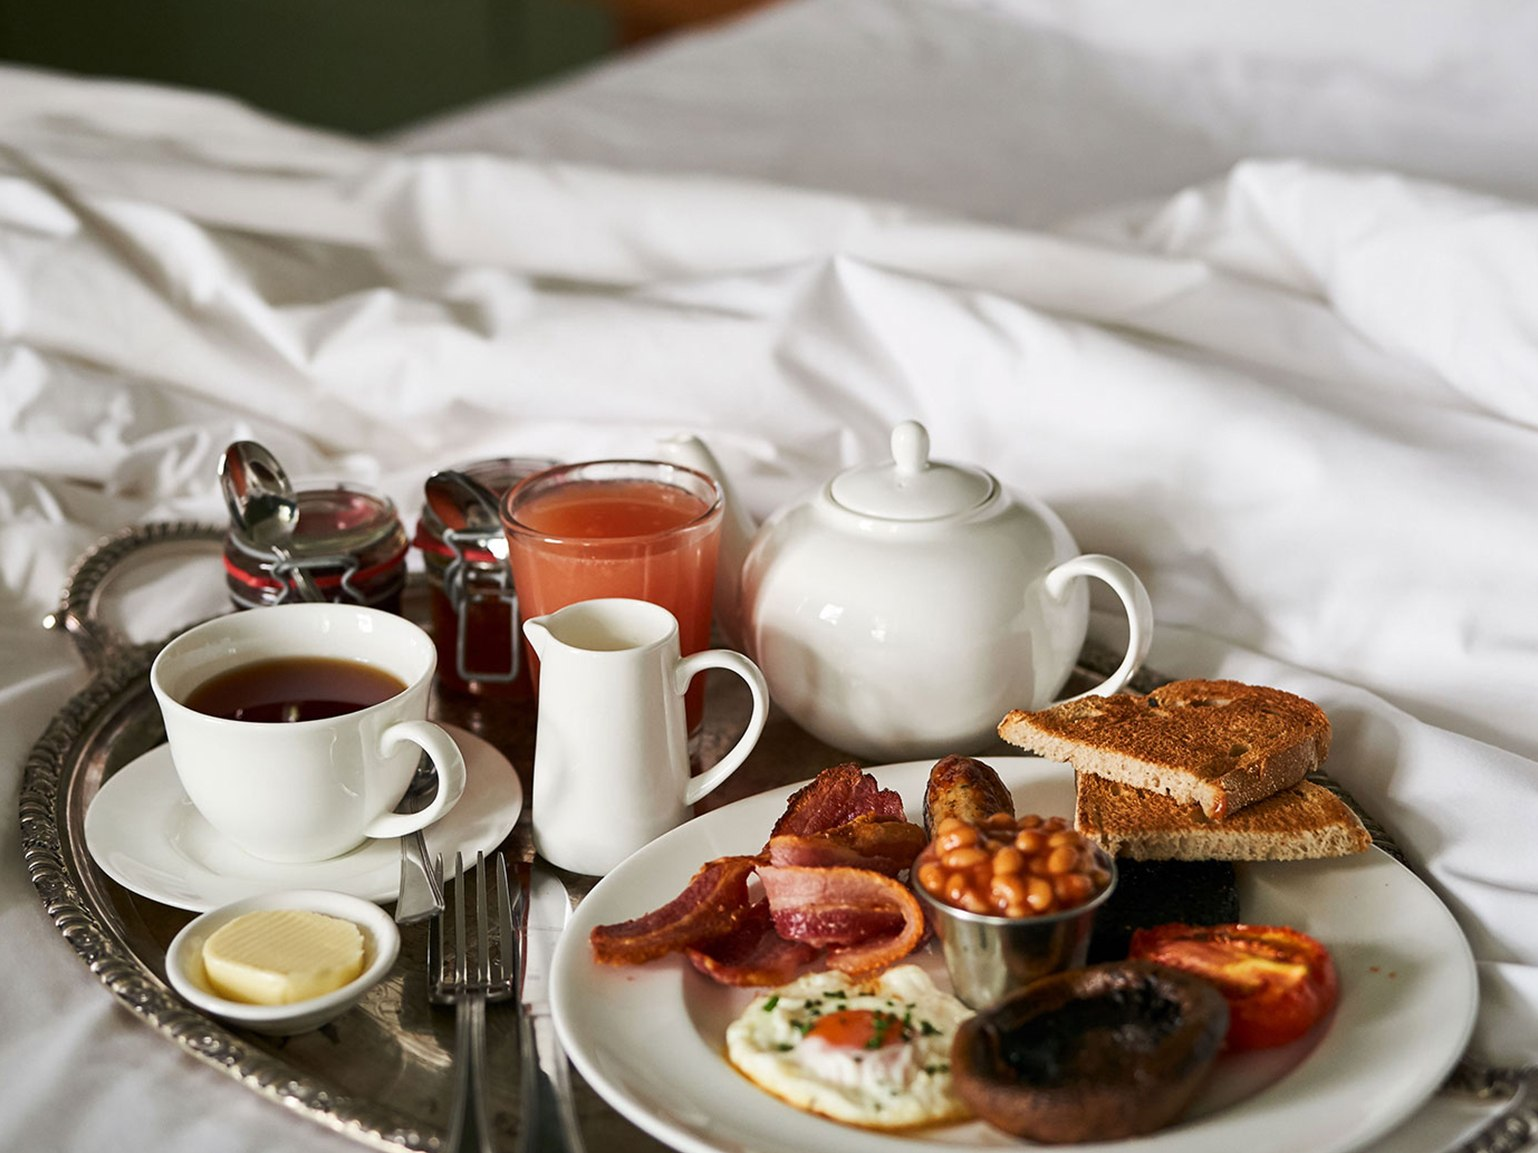 A breakfast tray on a bed.